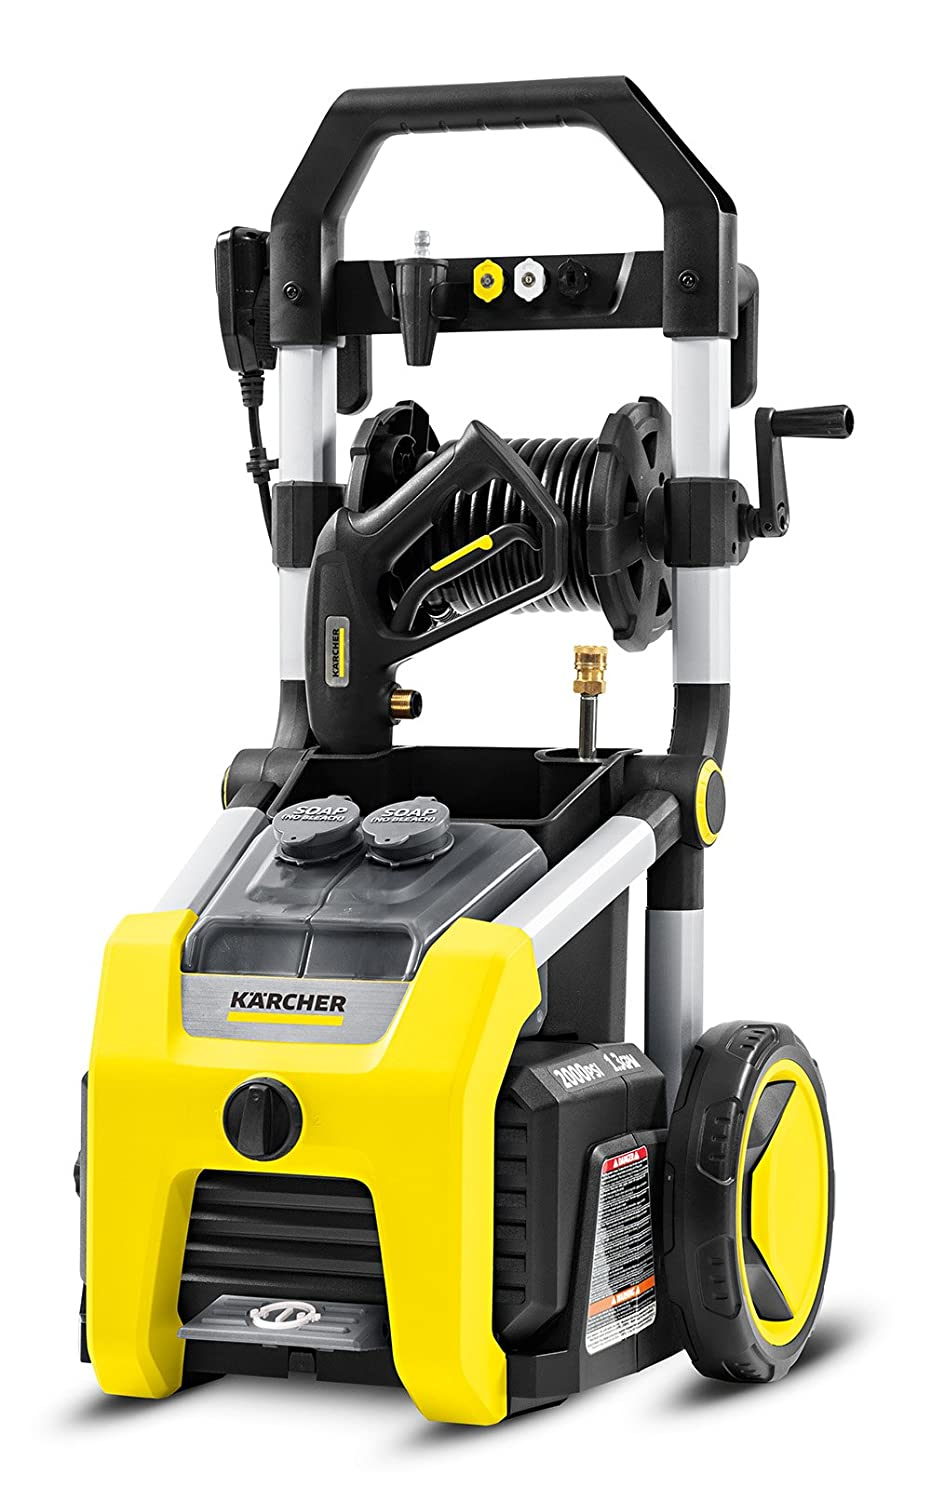 Karcher K2000 Electric Power Pressure Washer 2000 PSI TruPressure, 3-Year Warranty, Turbo Nozzle Included